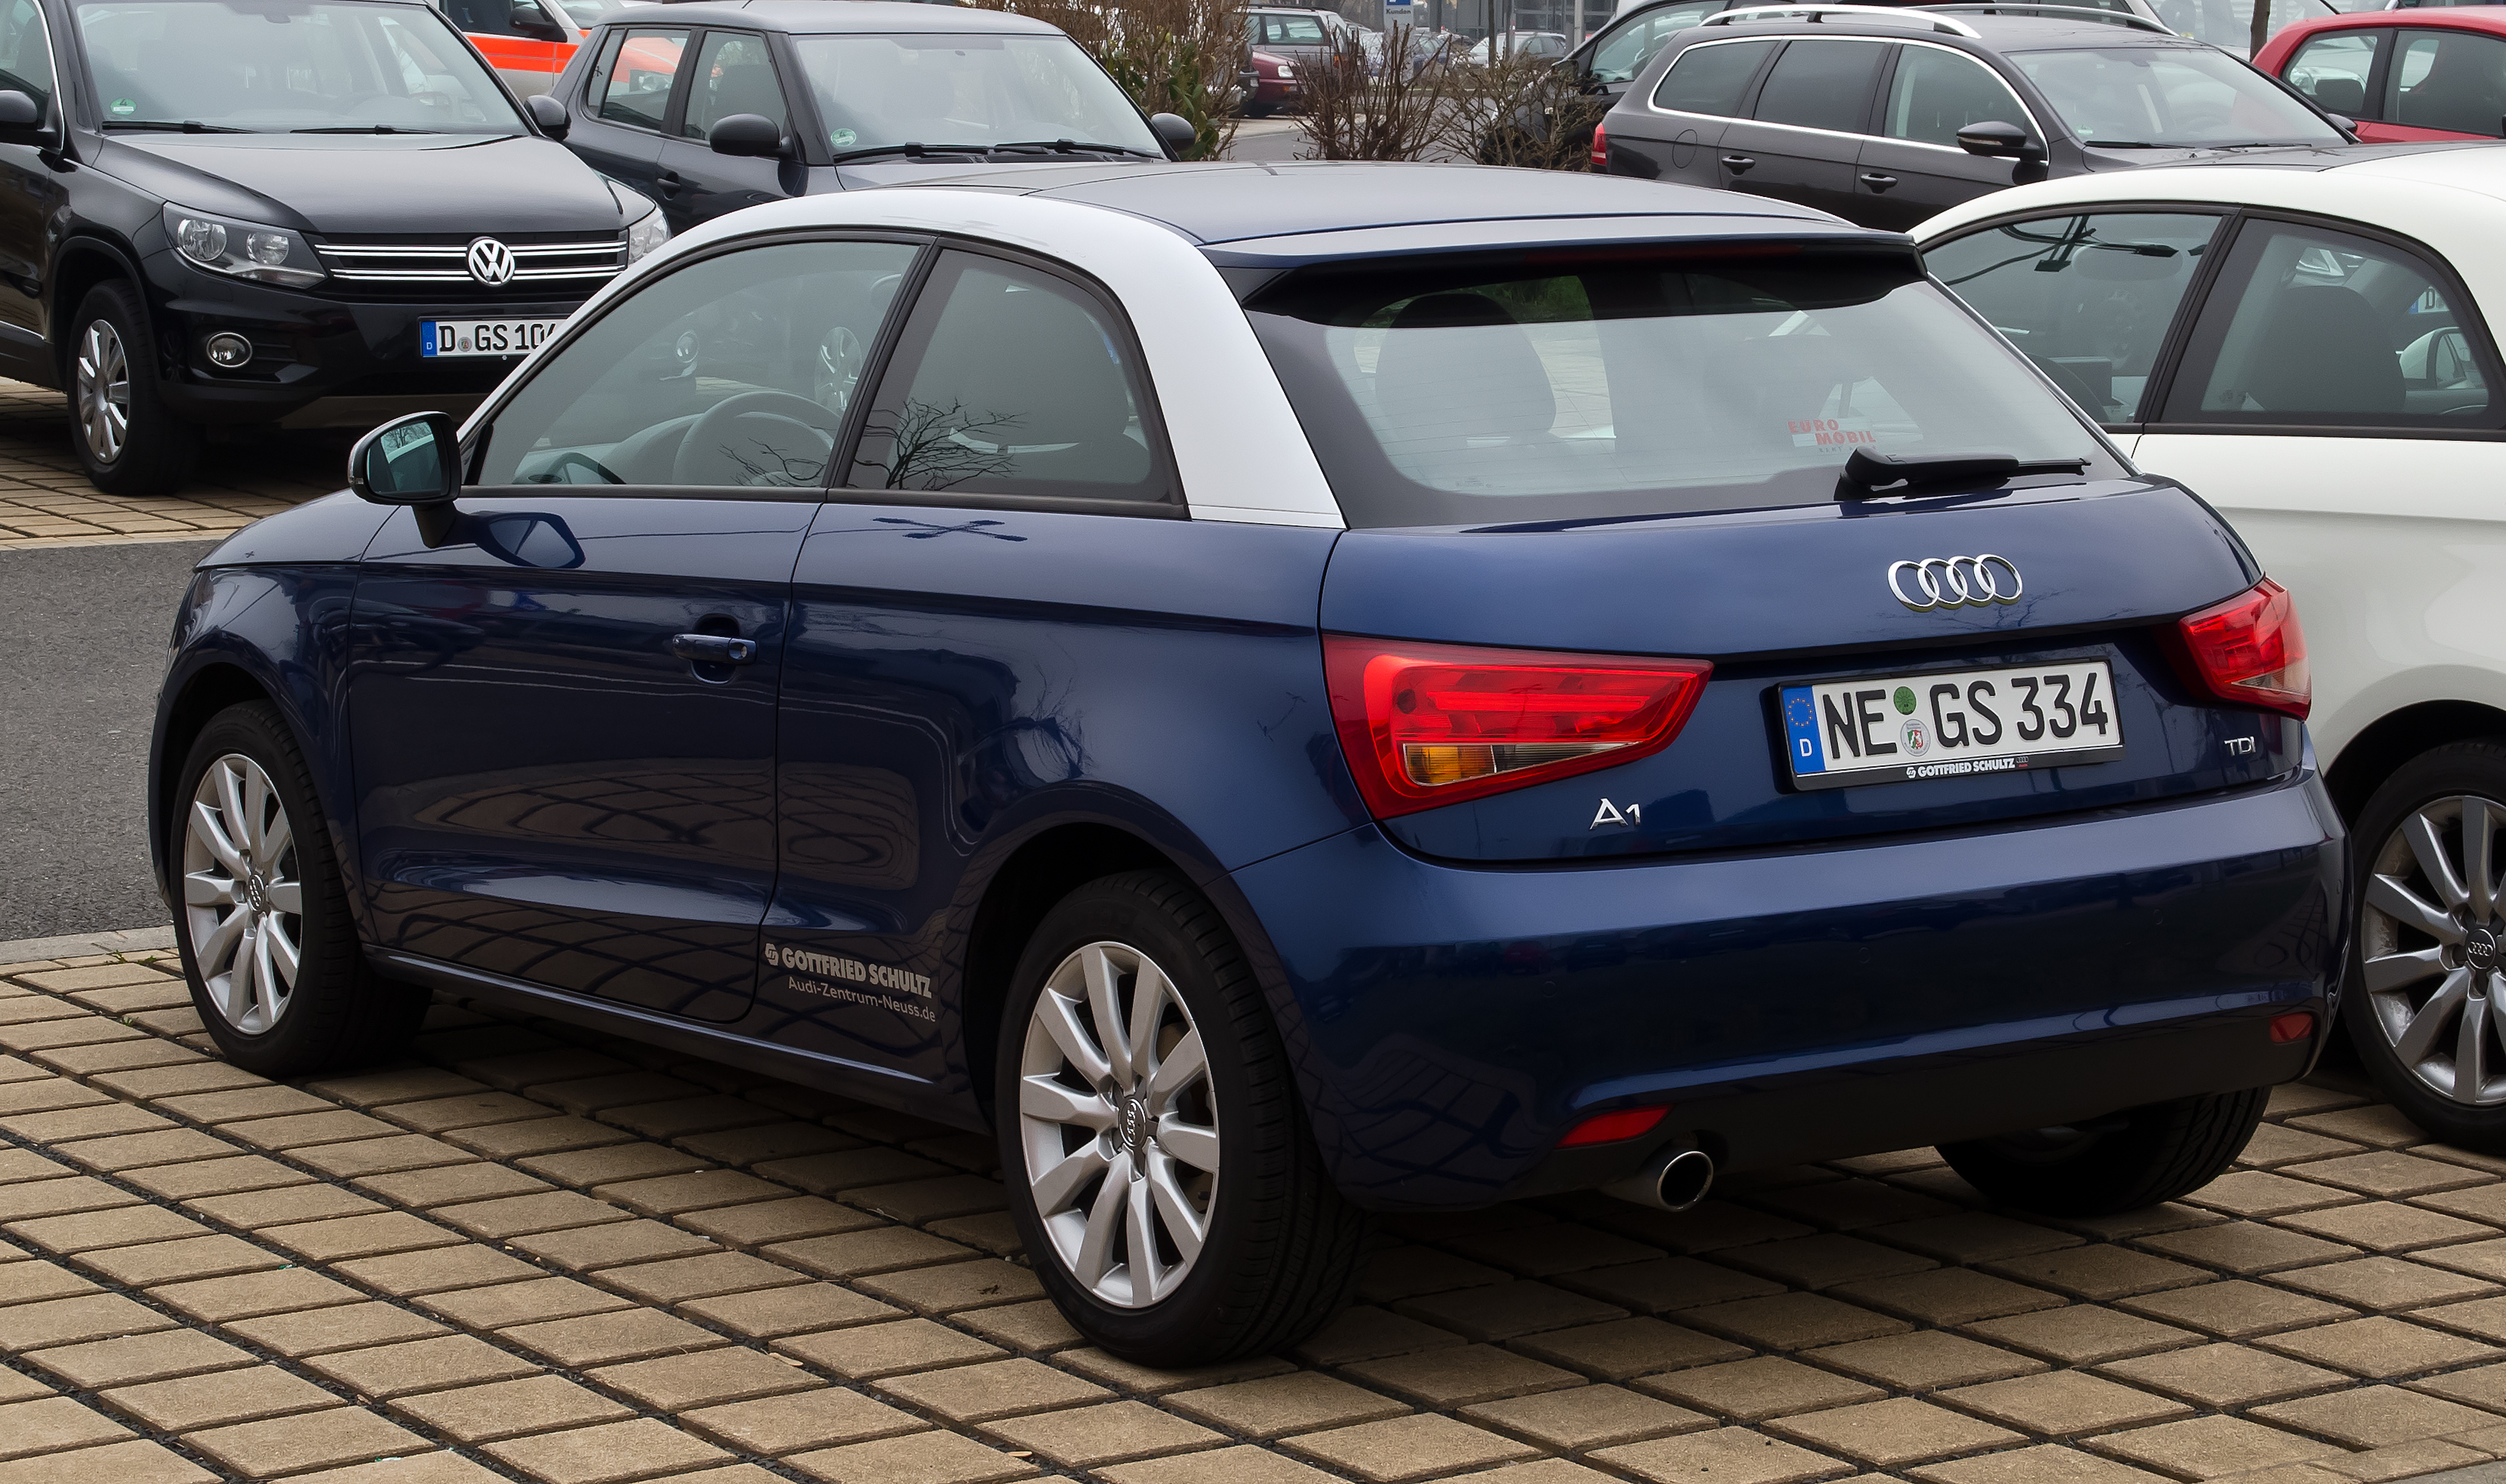 file audi a1 1 6 tdi ambition heckansicht 17 m rz 2012 d wikimedia commons. Black Bedroom Furniture Sets. Home Design Ideas